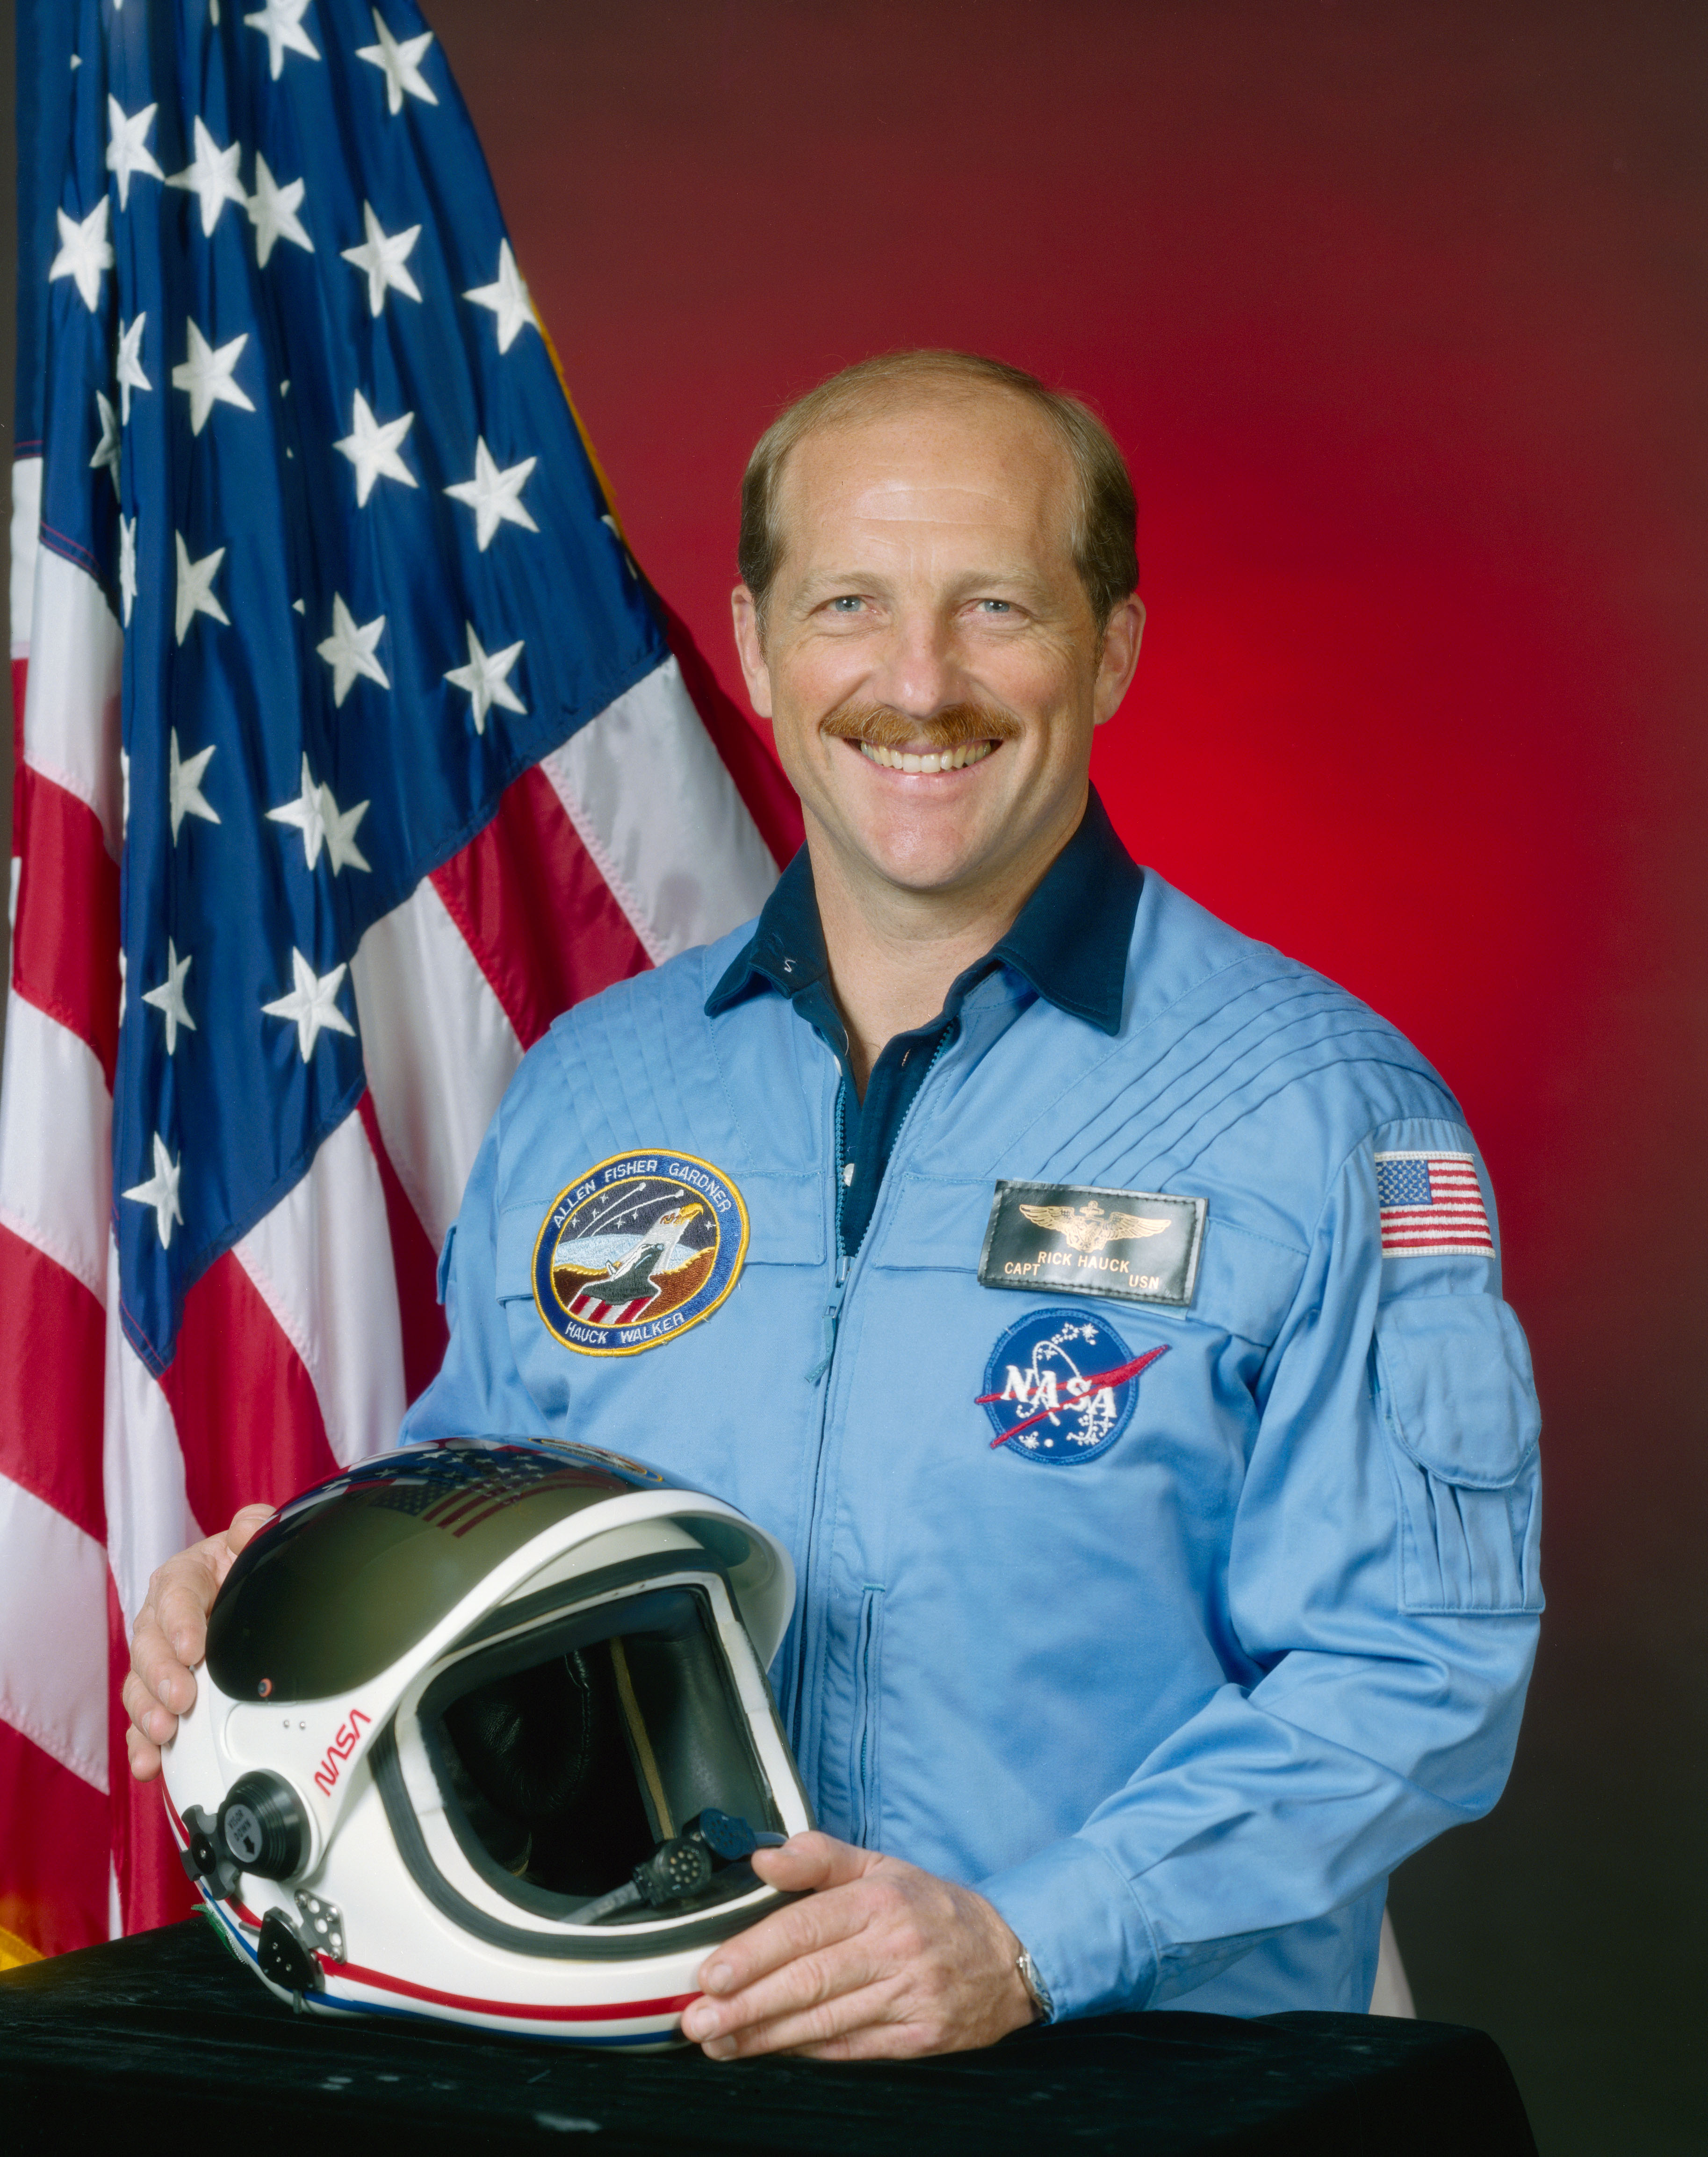 Astronaut Rick Hauck, NASA photo (26 June 1985) Source: Wikipedia www.jsc.nasa.gov page unavailable April 2019) Hauck-fh.jpg